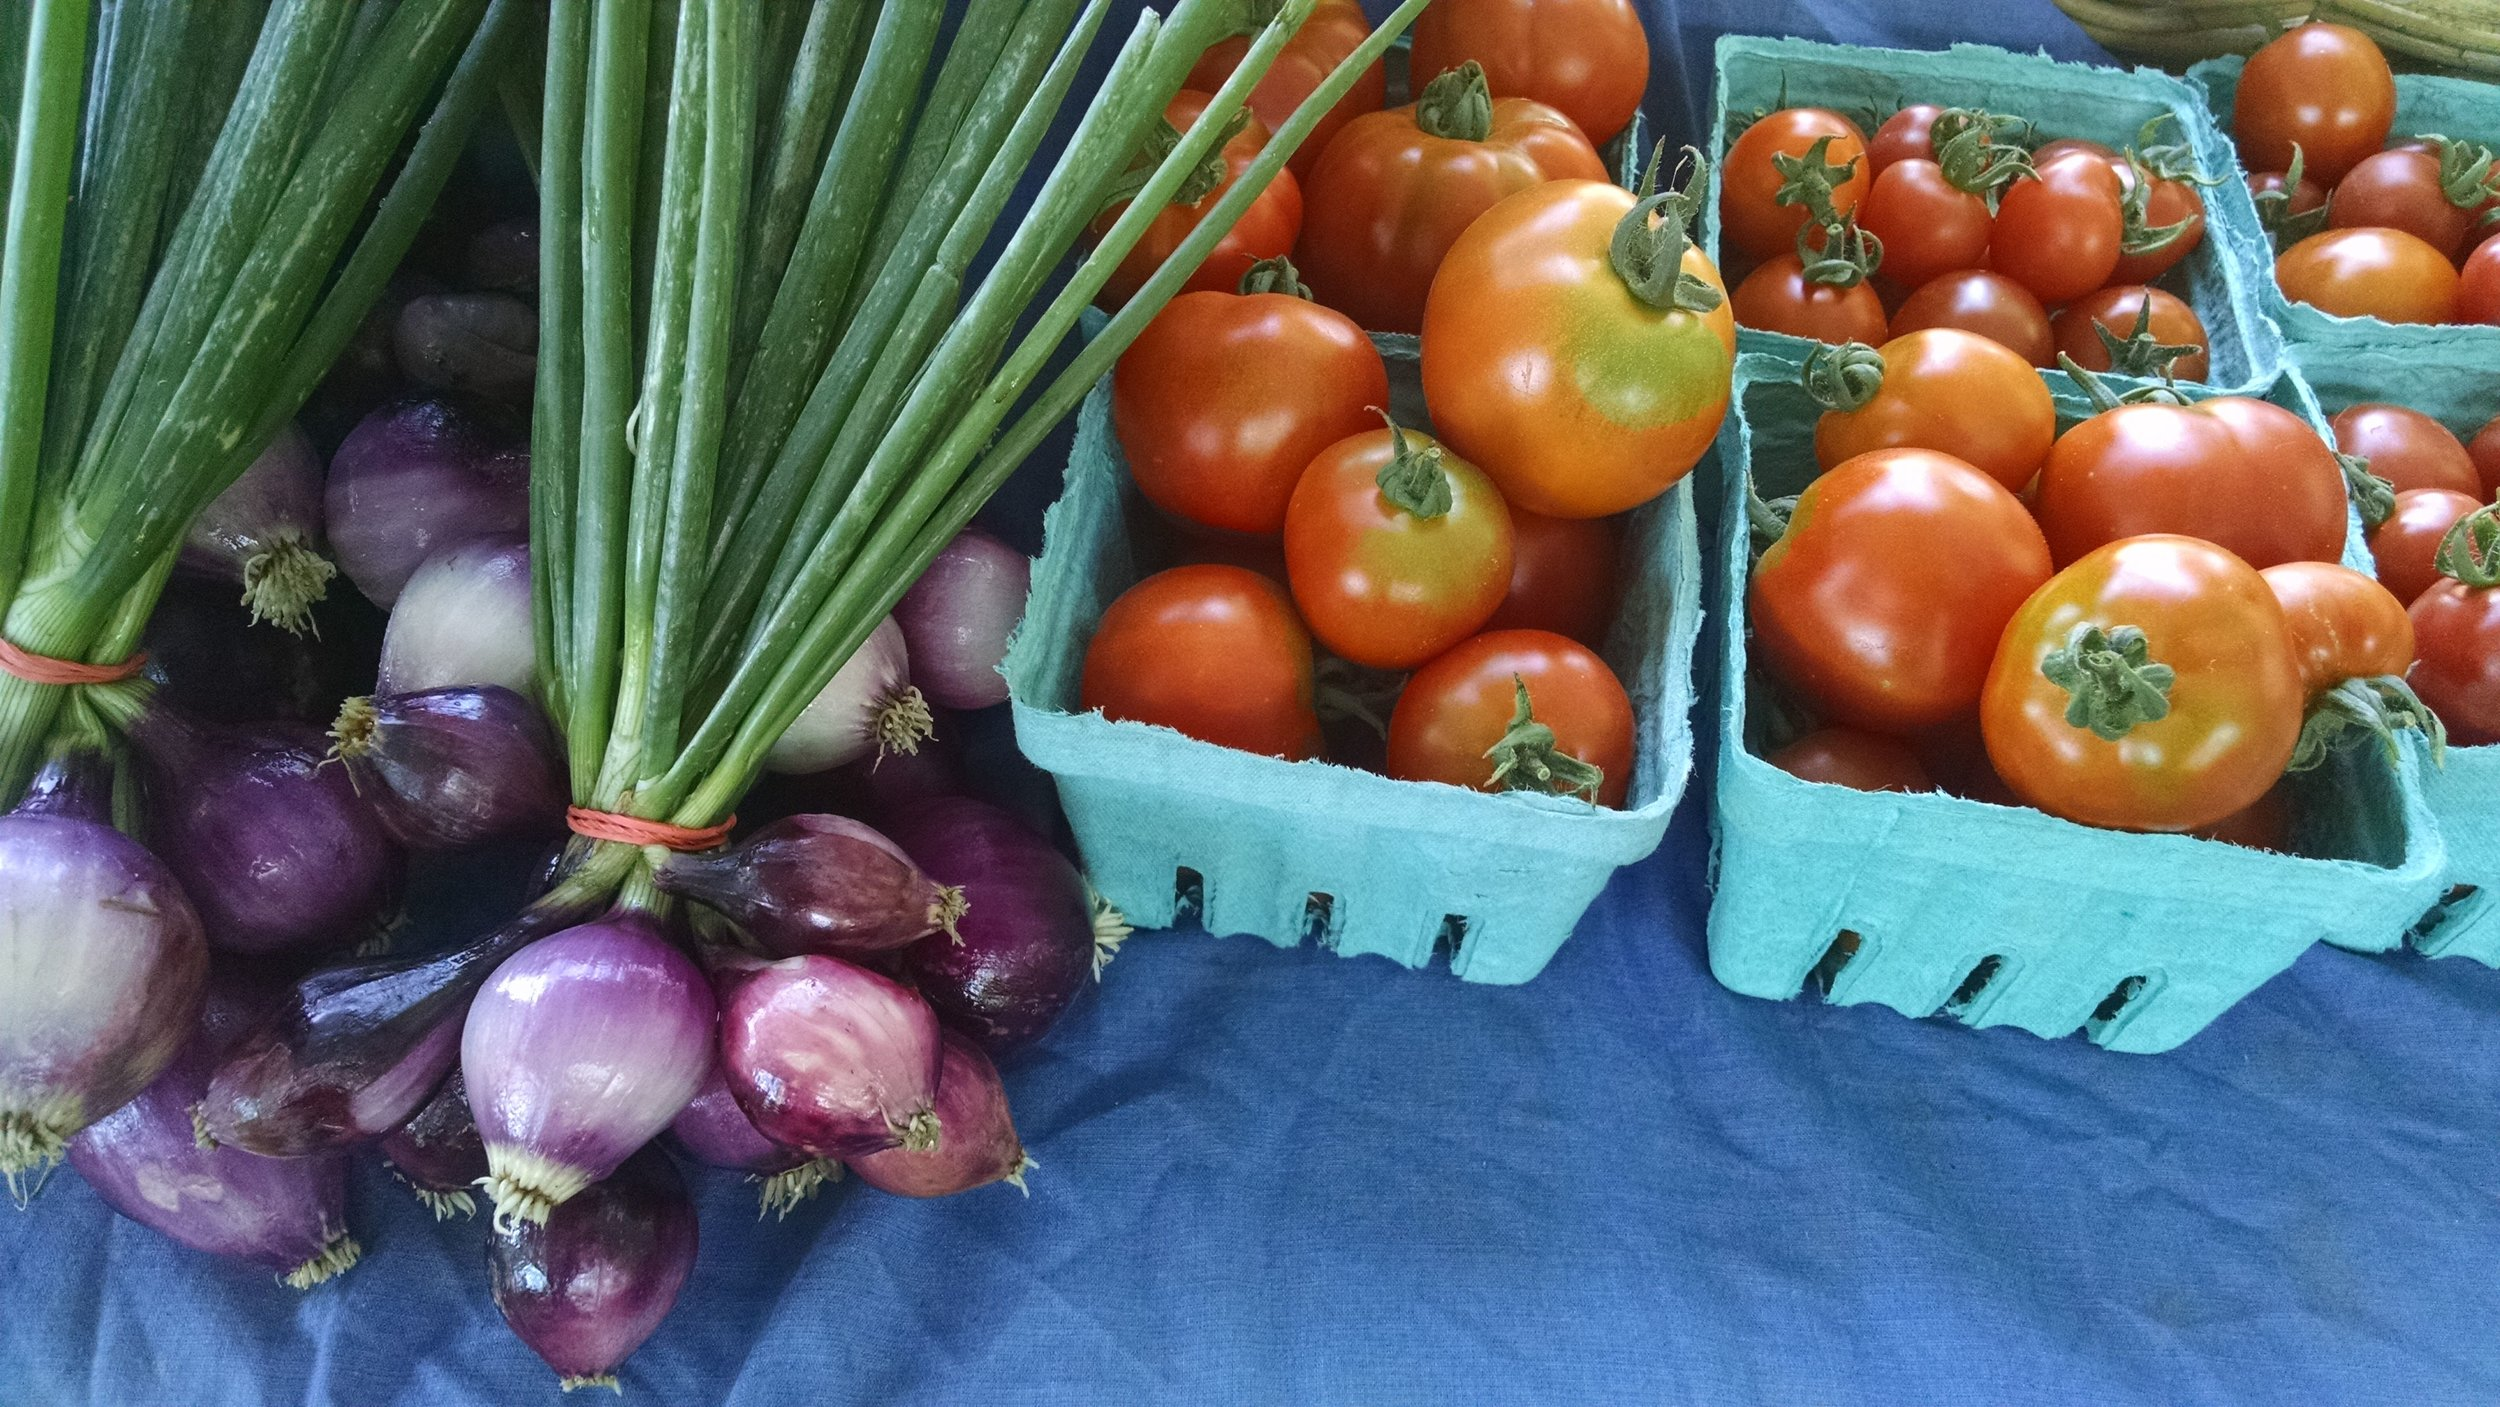 Purple pearl onions and tomatoes